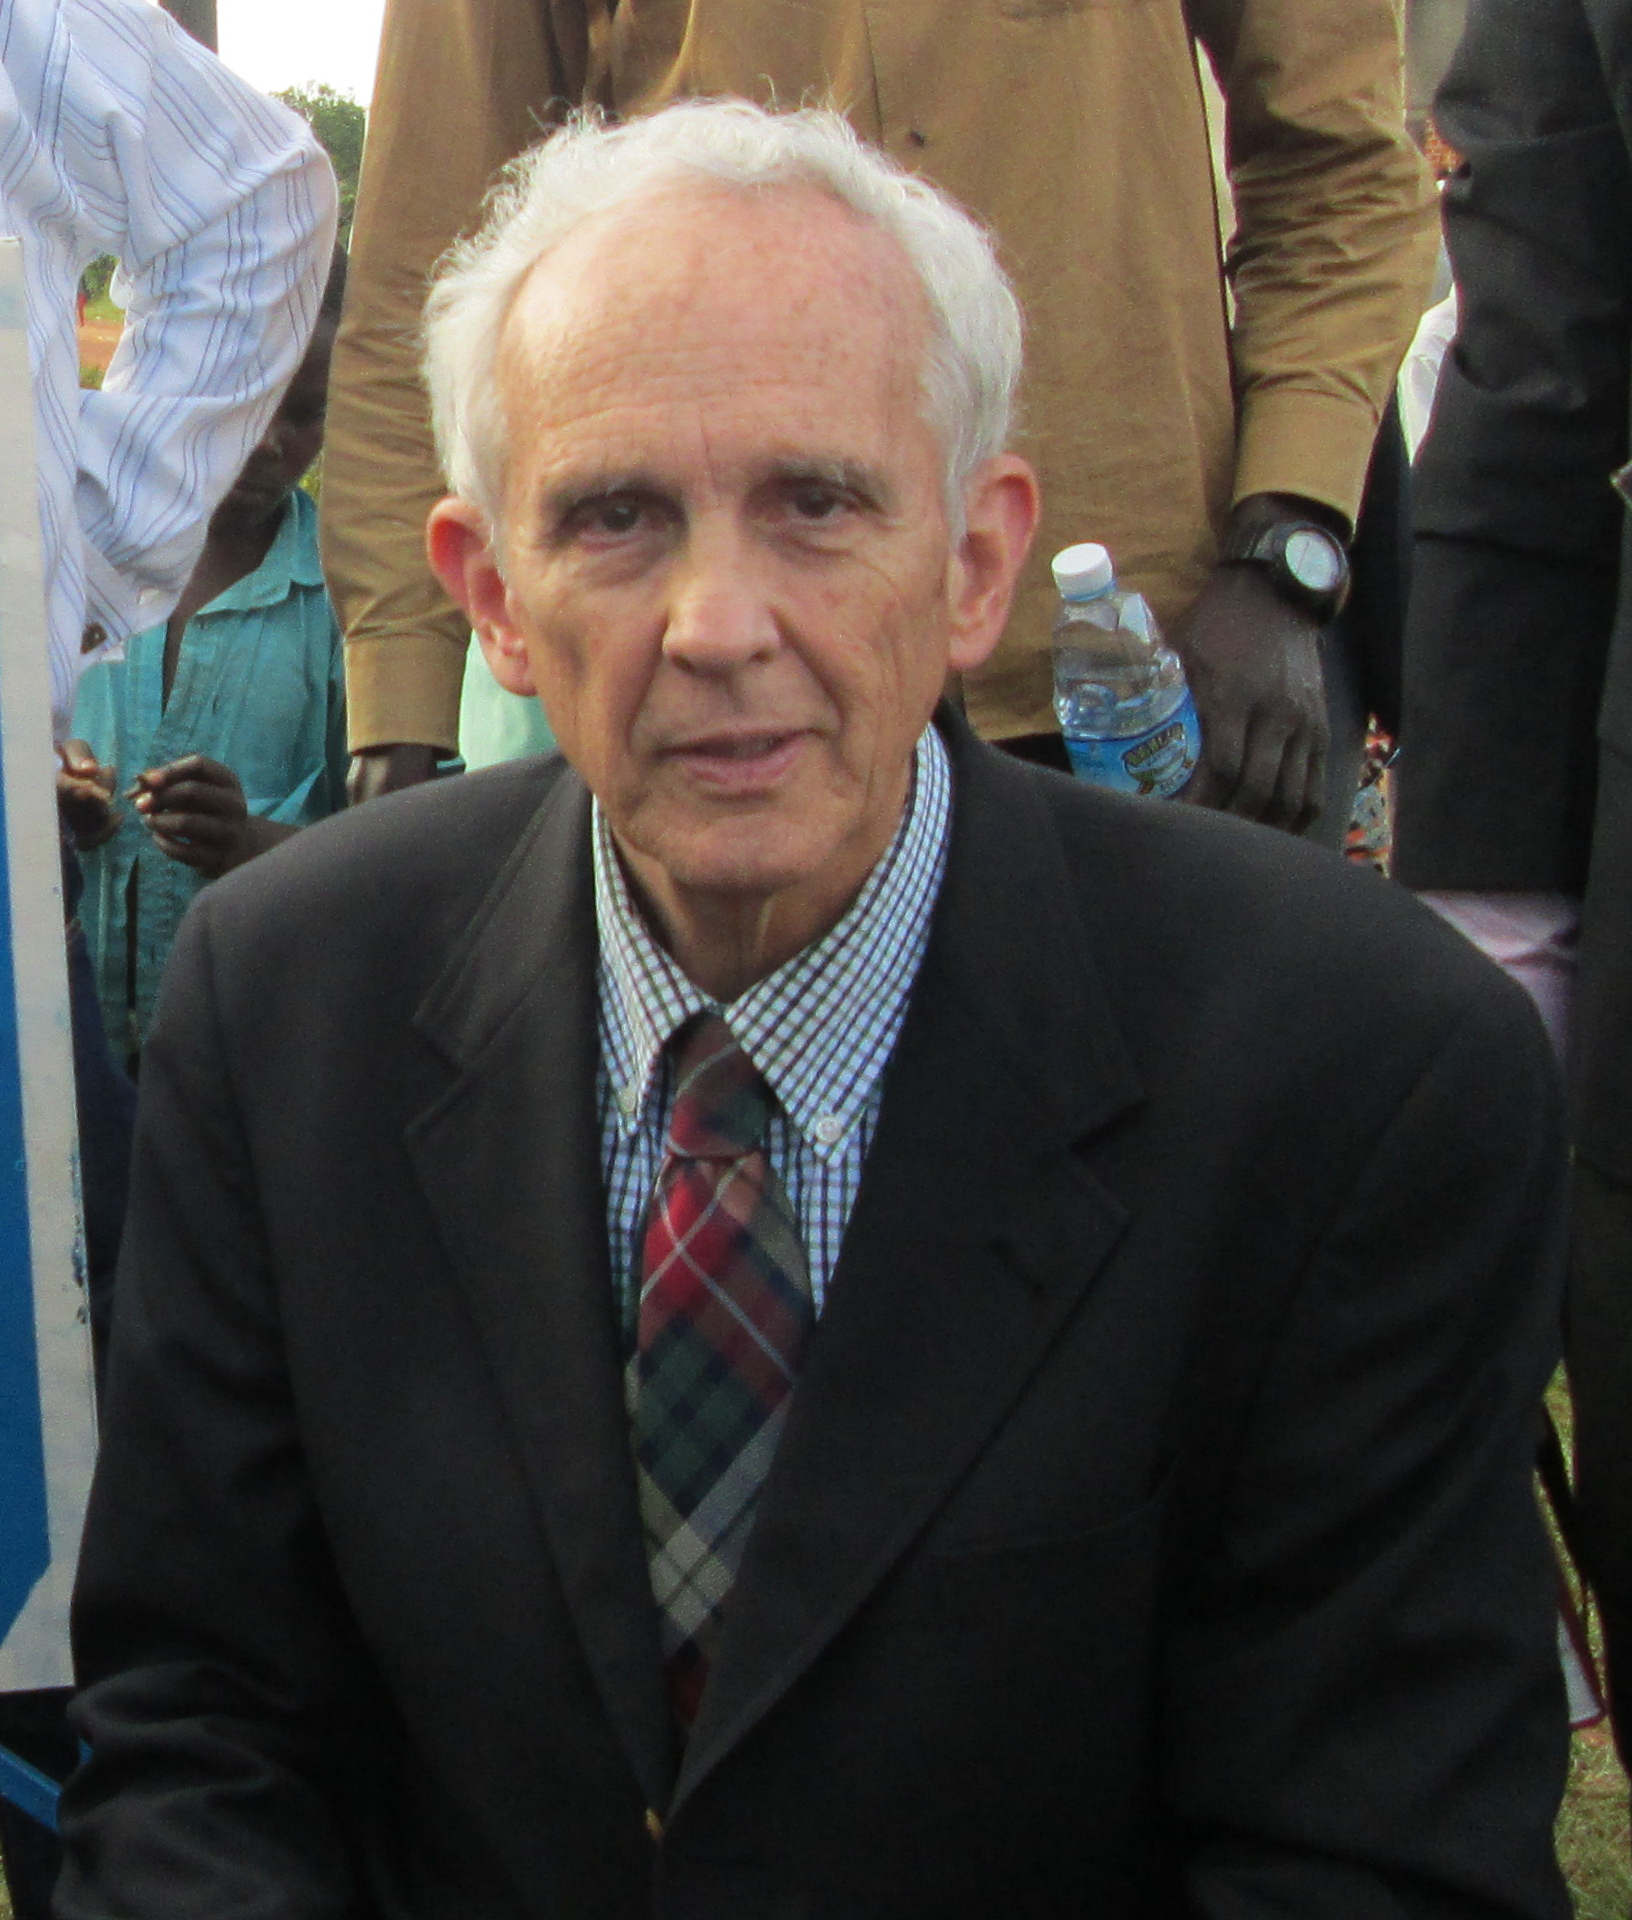 Dr. Gregory Bartha at the opening ceremony of the Cross Emergency Medical Clinic in rural Uganda